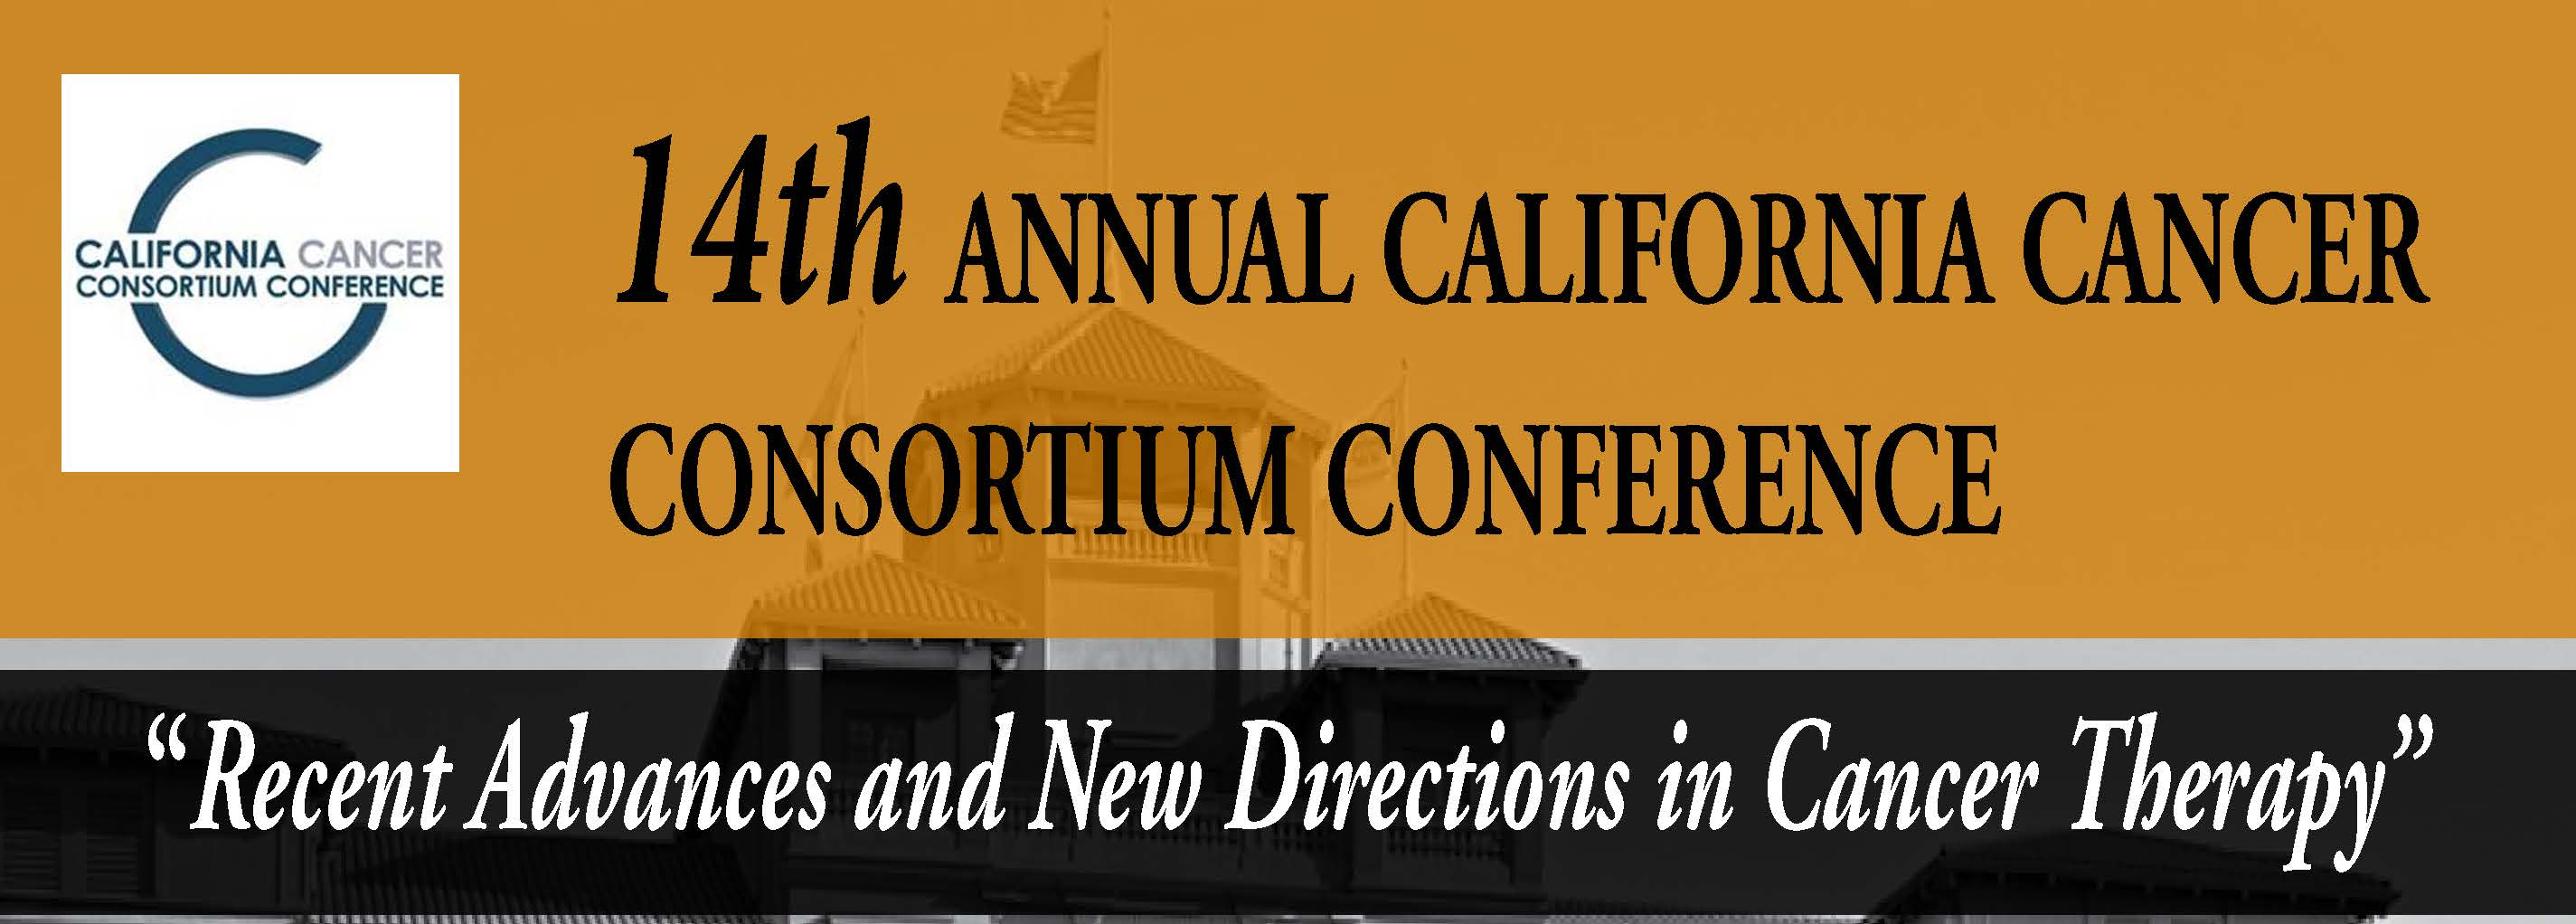 California Cancer Consortium Conference